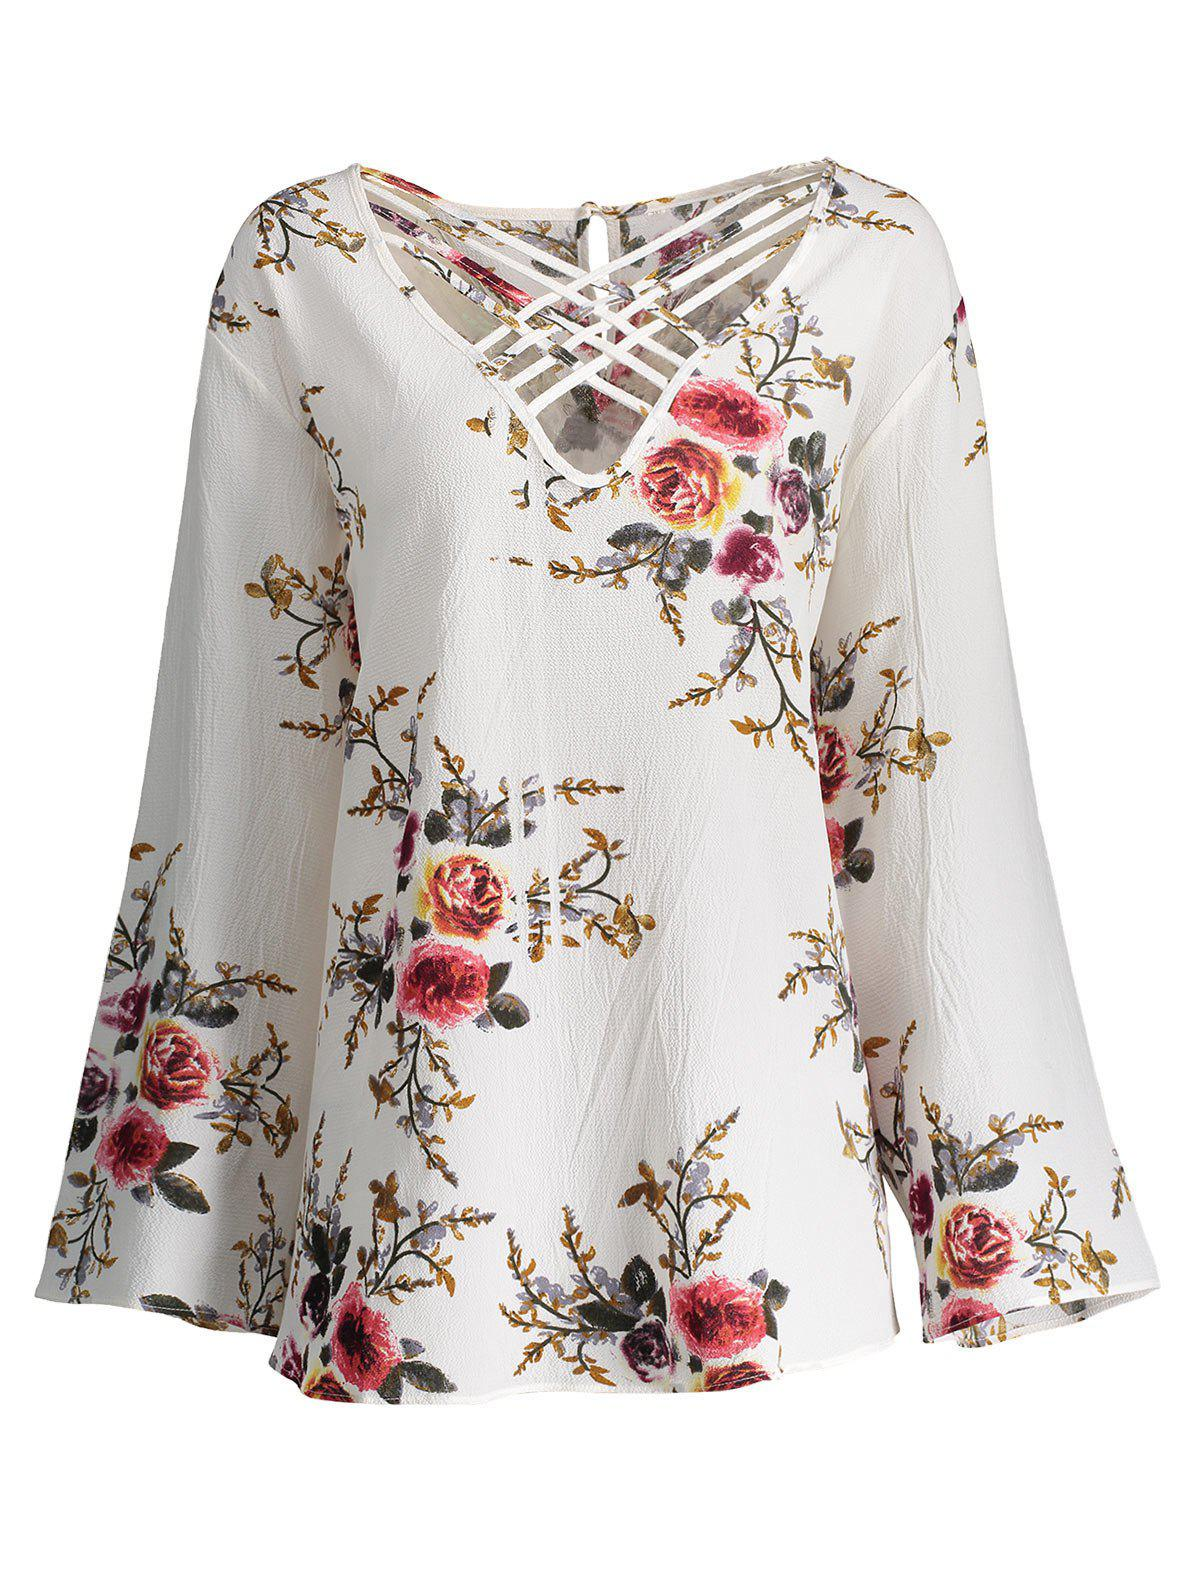 Lattice Plus Size Hollow Out Floral TopWOMEN<br><br>Size: 4XL; Color: CRYSTAL CREAM; Material: Polyester,Spandex; Shirt Length: Regular; Sleeve Length: Full; Collar: V-Neck; Style: Fashion; Season: Fall,Spring; Pattern Type: Floral; Weight: 0.2200kg; Package Contents: 1 x Top;